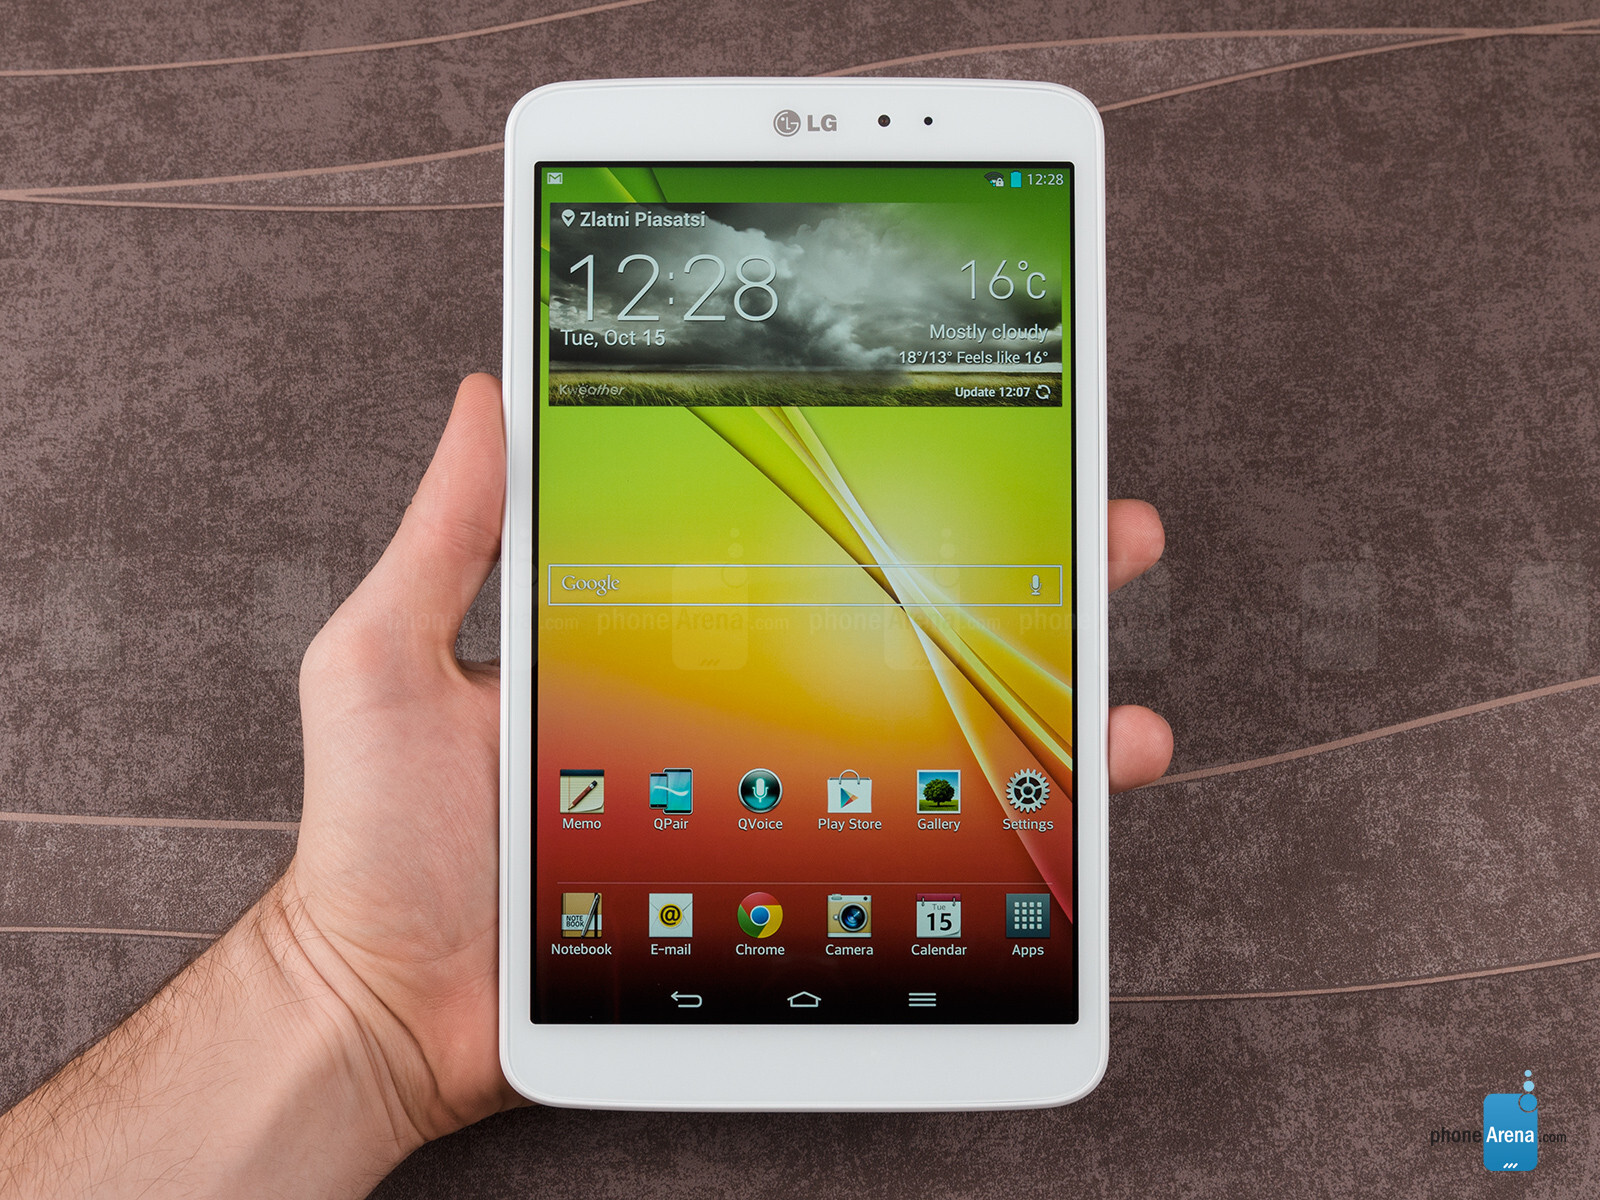 LG G 8.3 Pad, All The Information about The New Tablet Android LG